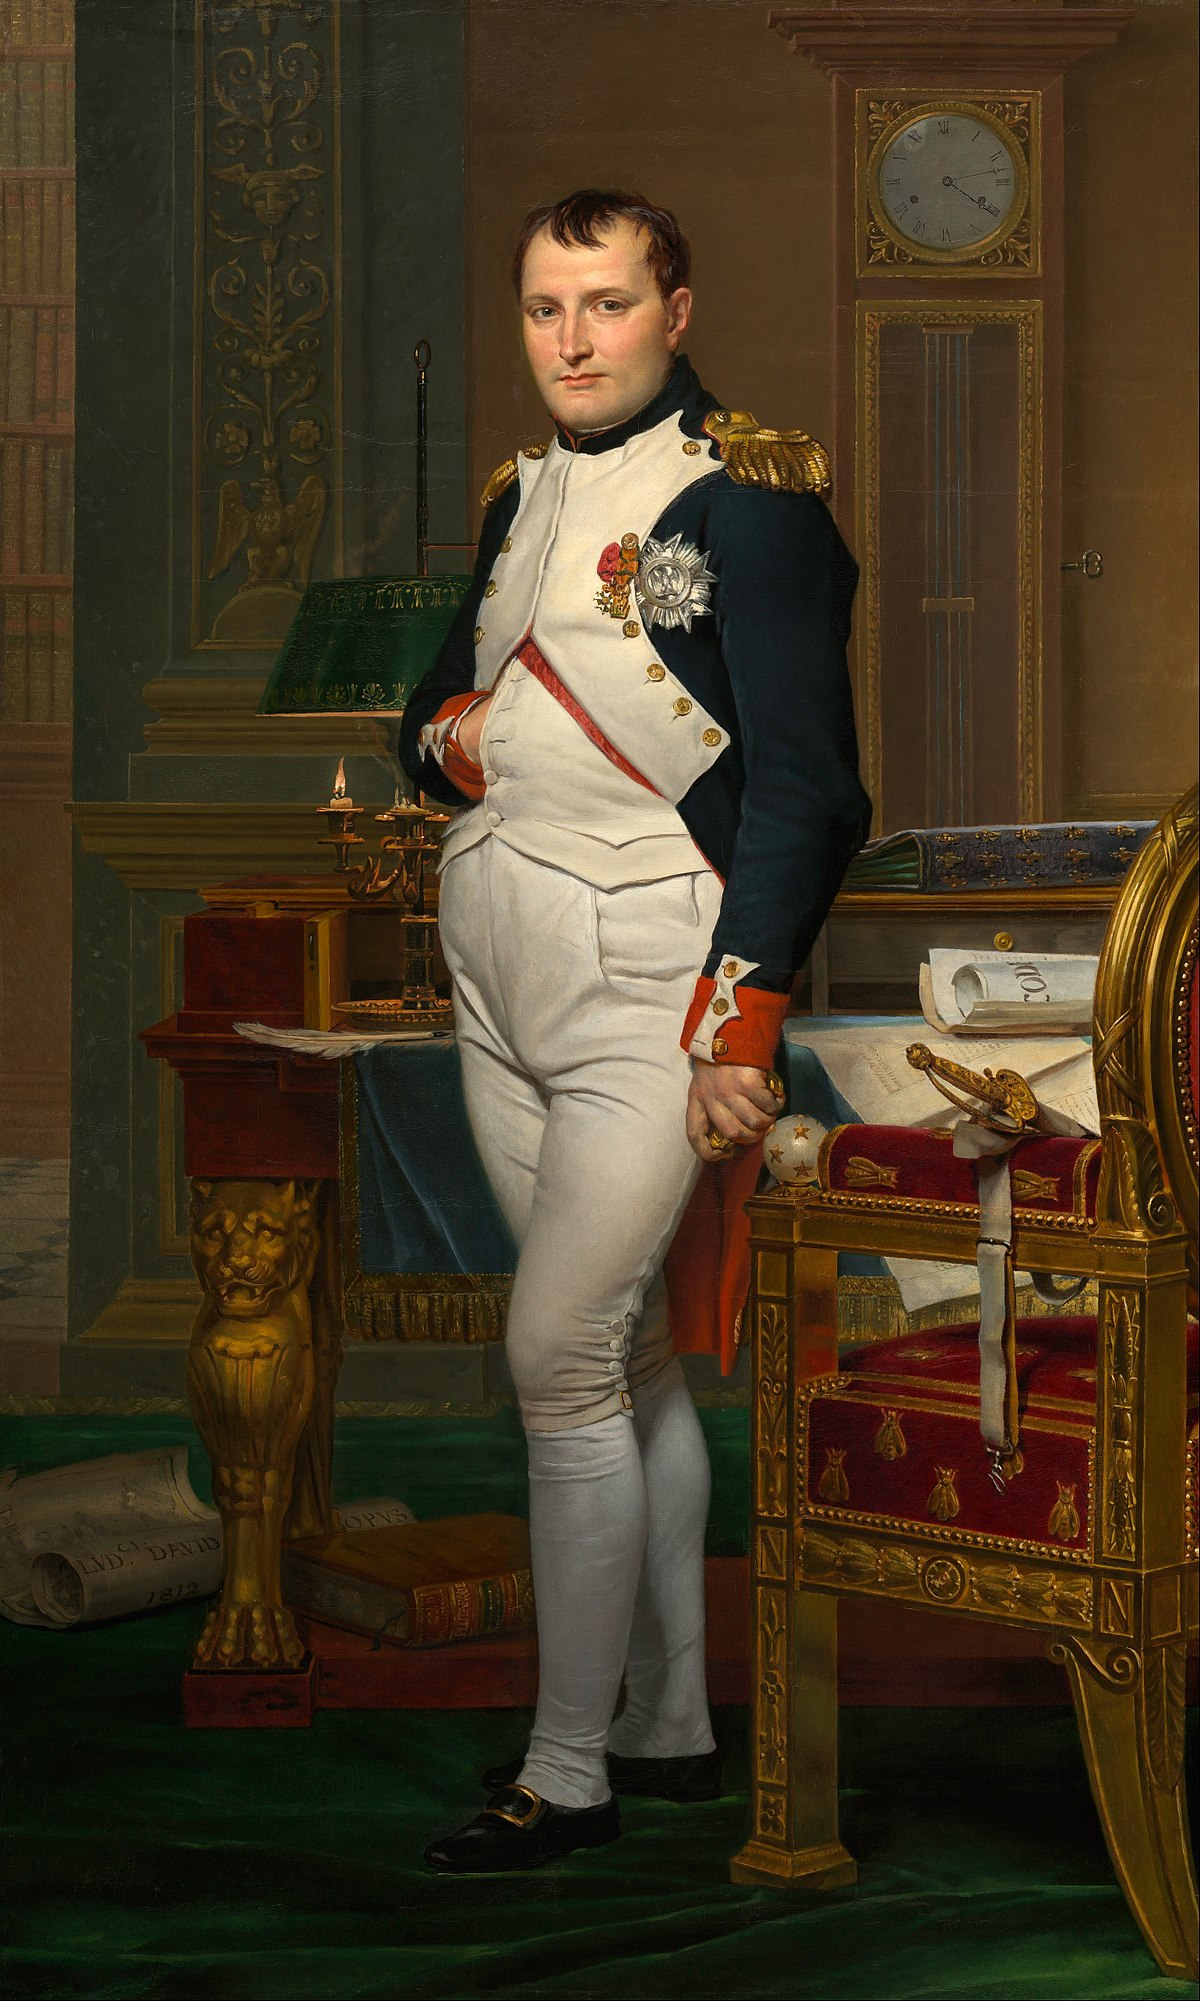 1200px-jacques-louis_david_the_emperor_napoleon_in_his_study_at_the_tuileries_google_art_project.jpg